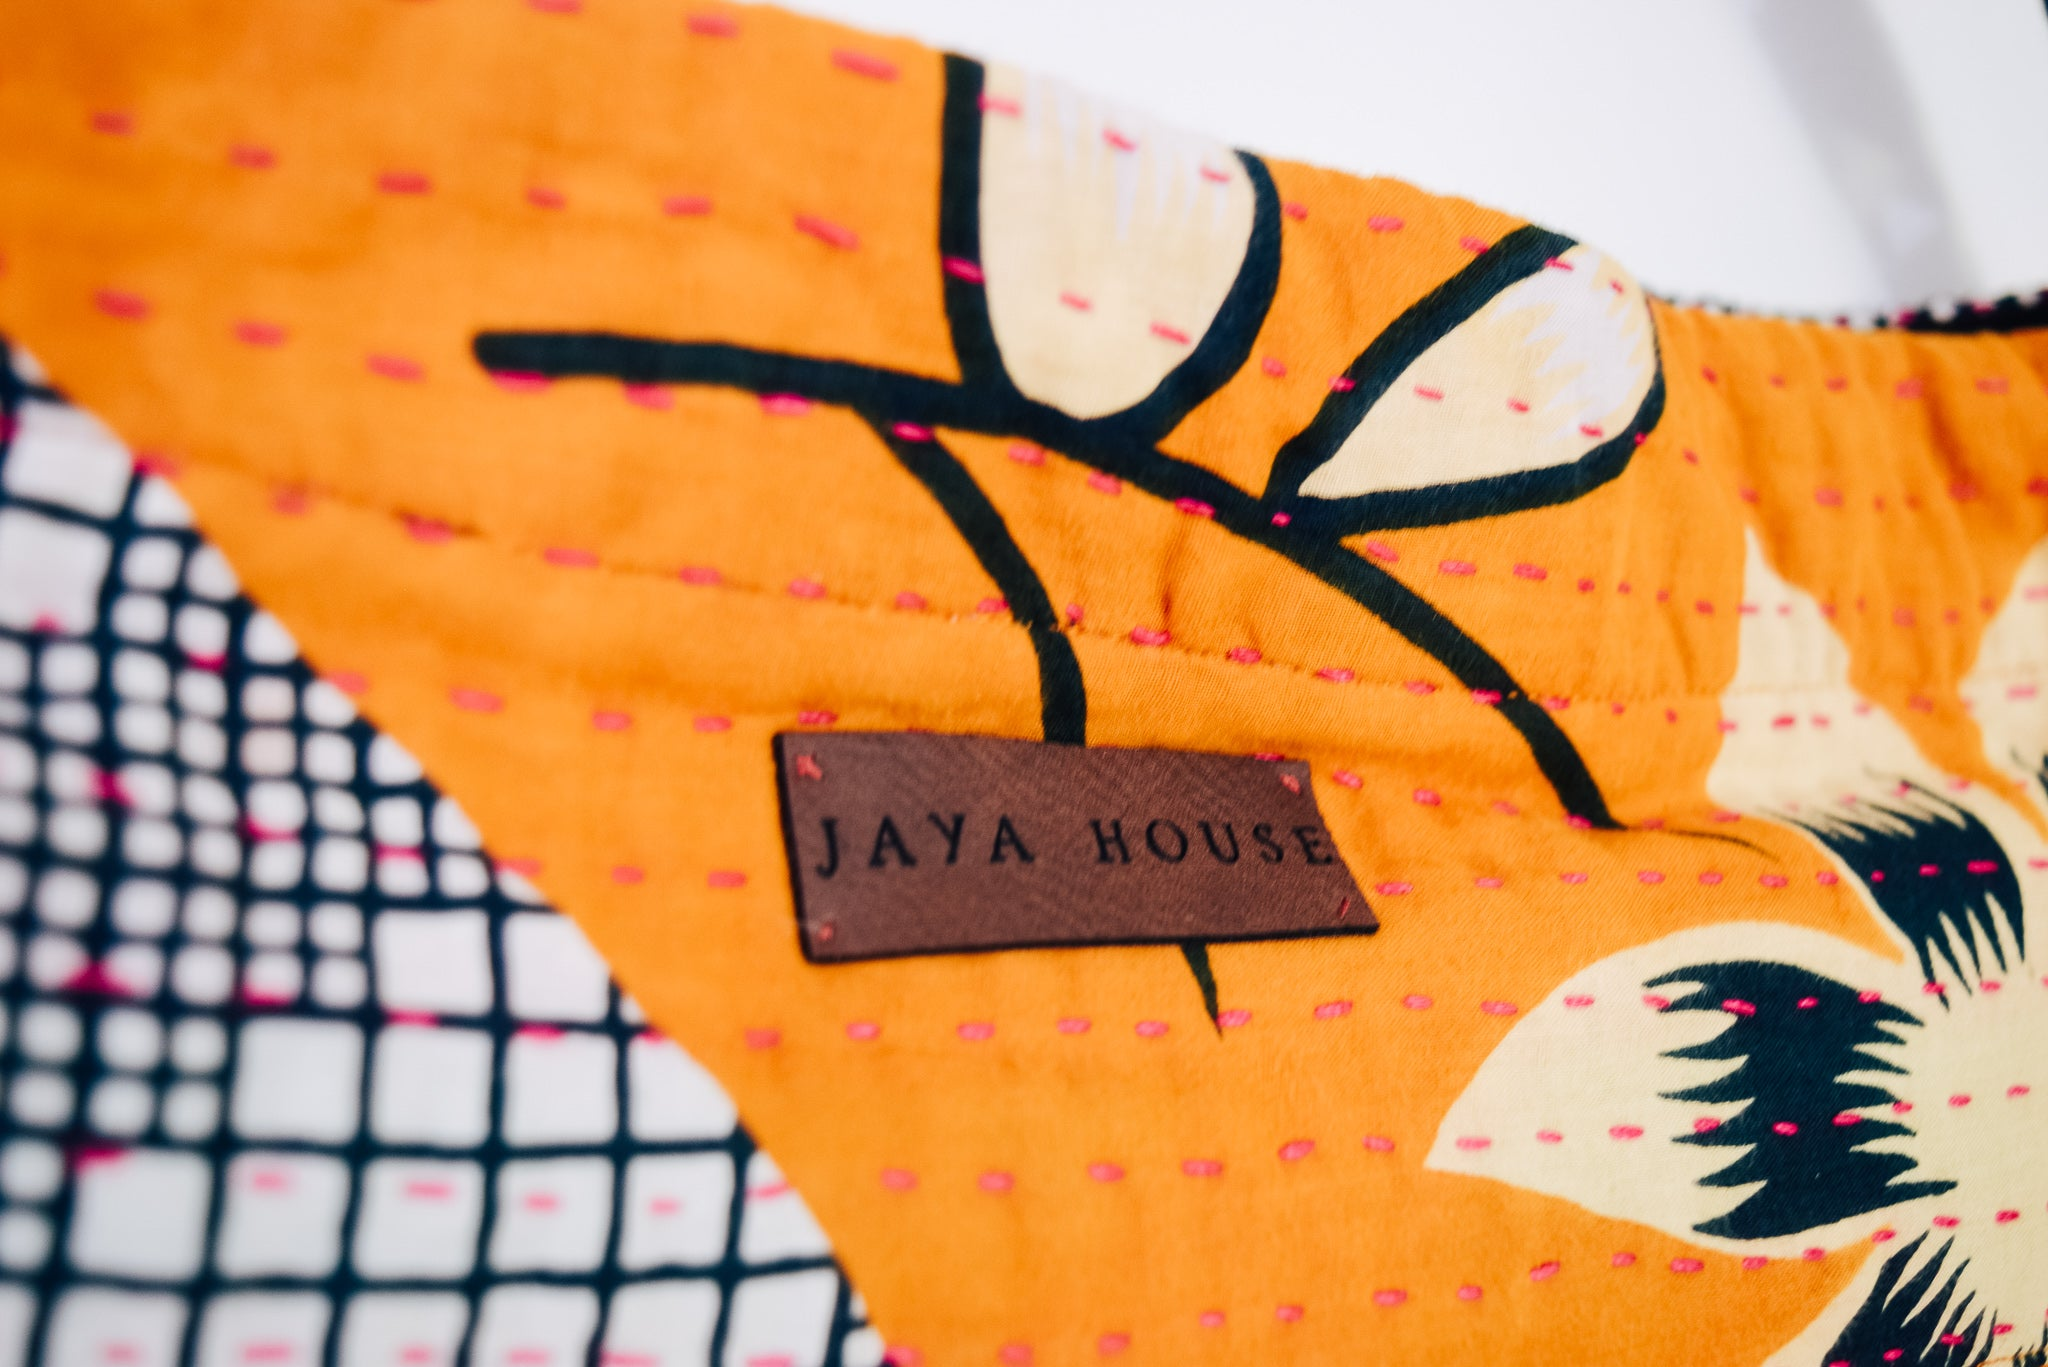 Arotun Bucket Bag - The Jaya House